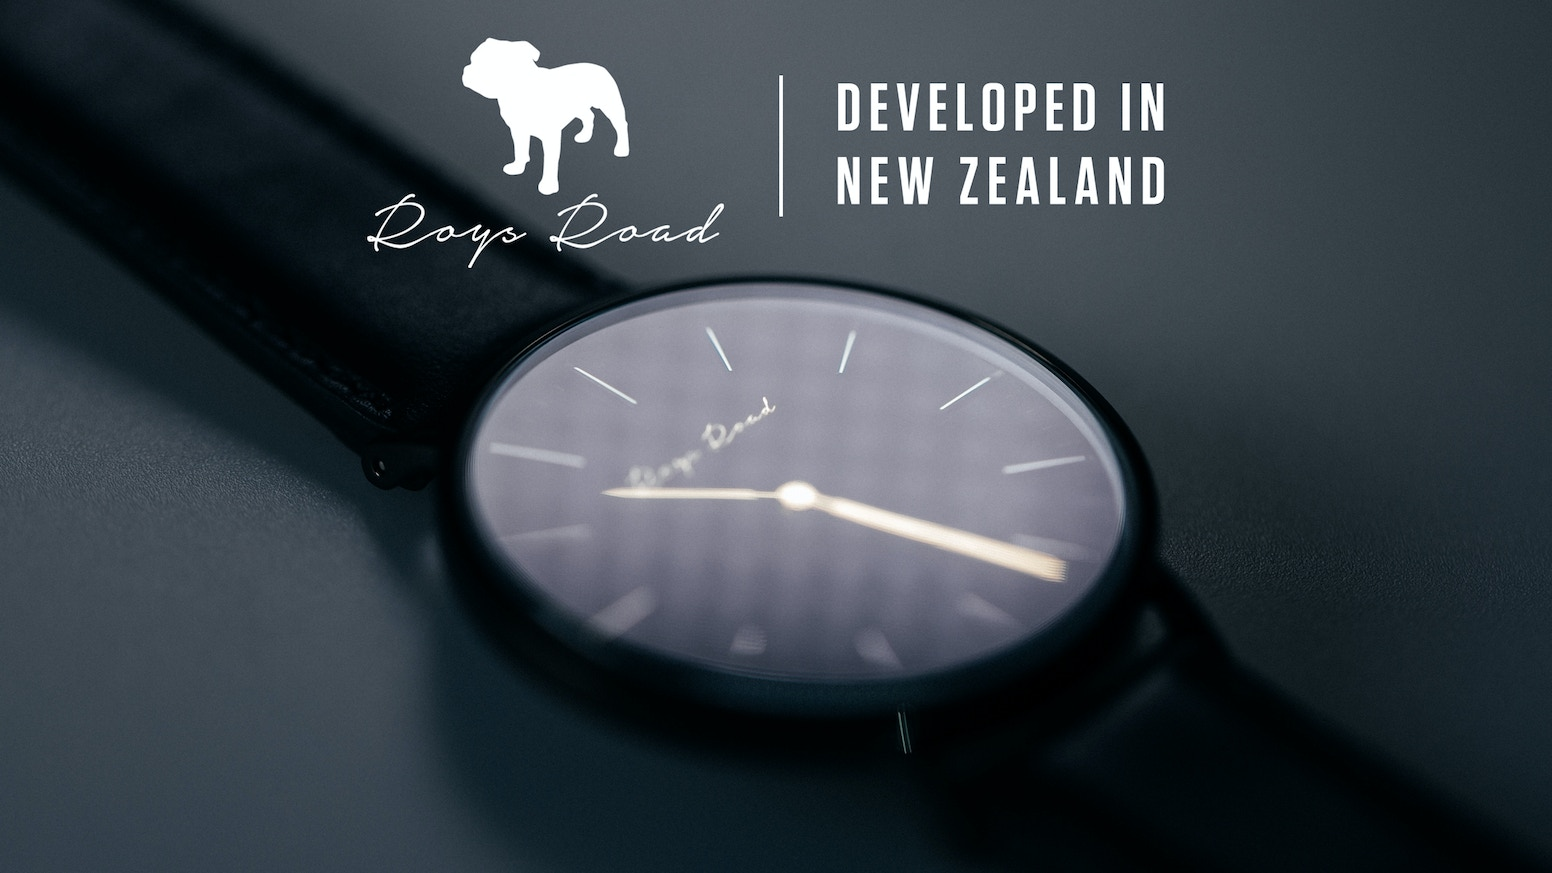 Developed in New Zealand, Roys Road Watch Co. design classic, simple & modern watches for men & women.